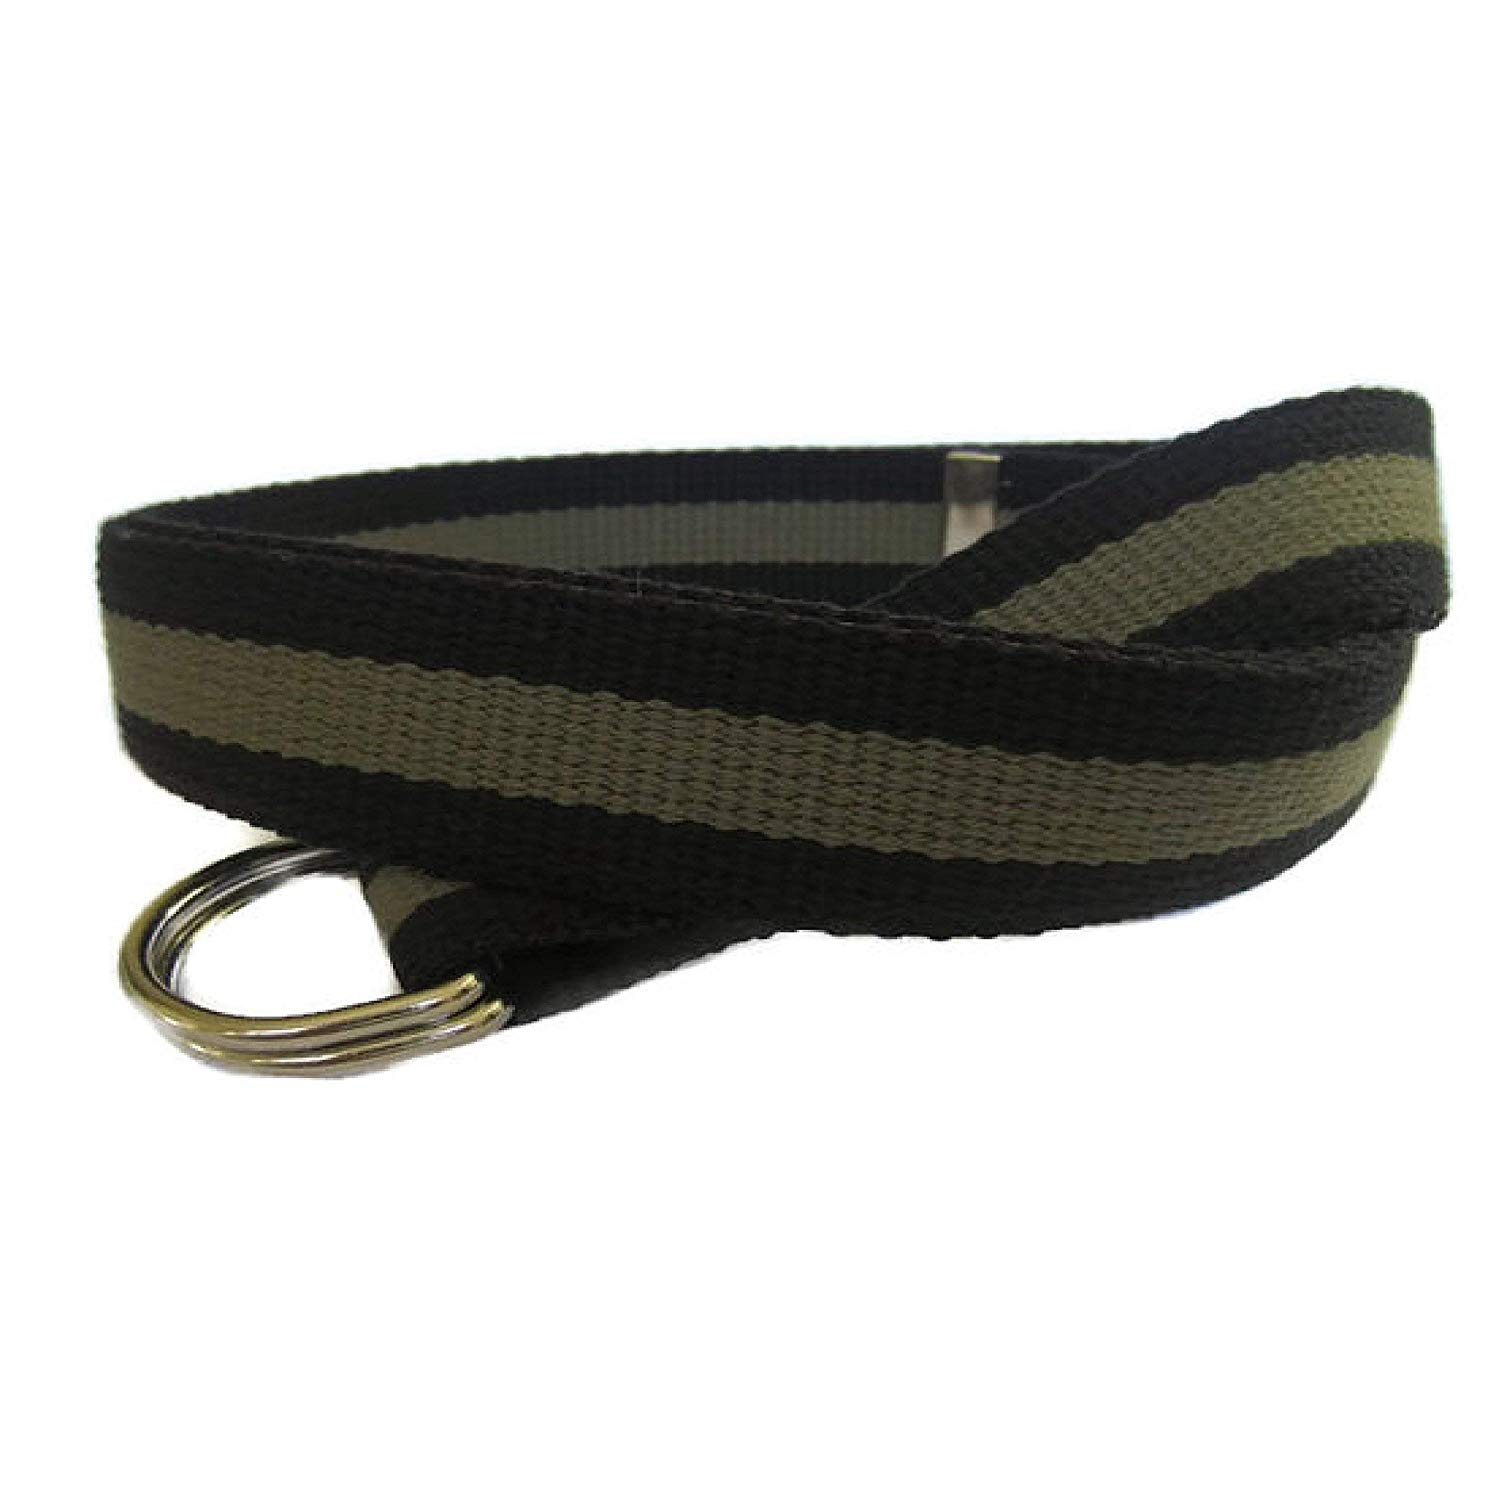 Mens Belt/Green and Black Canvas Belt/D-Ring Belt/Webbing Belt/Striped Belt in Army Green and Black - for boys teens men women Big & Tall and Plus Size